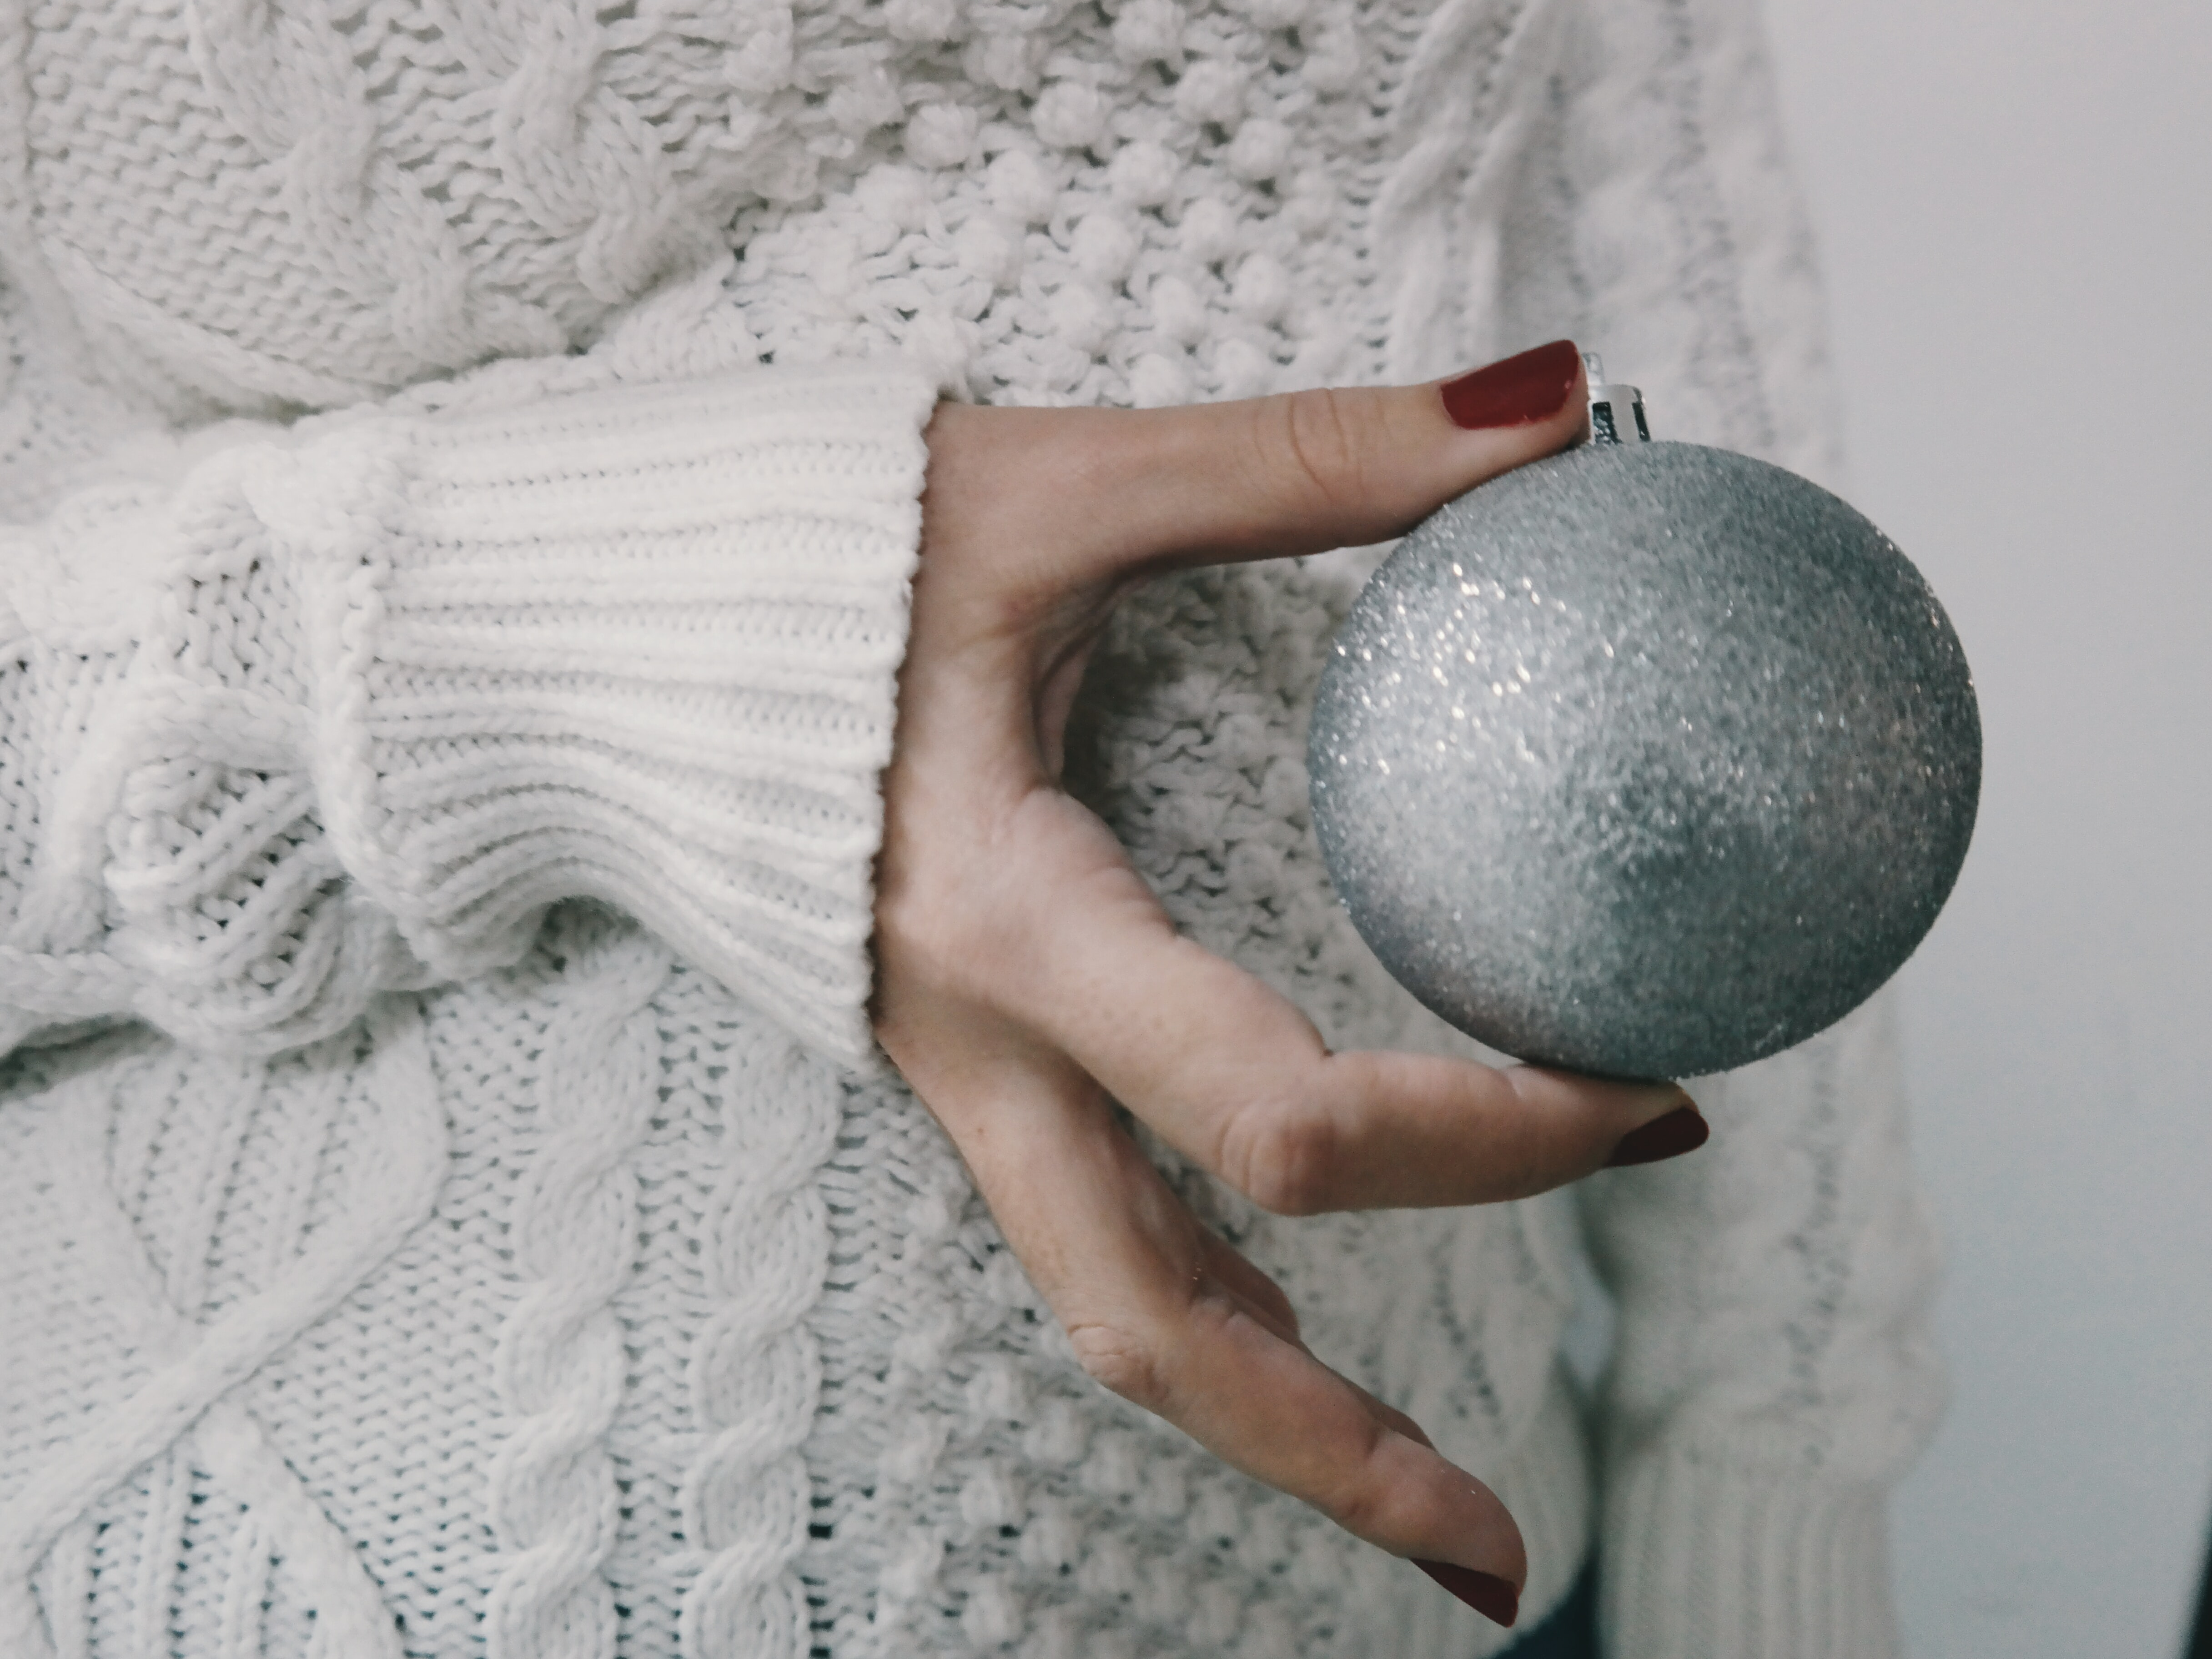 A person wearing a knitted sweater holding a silver Christmas ornament.